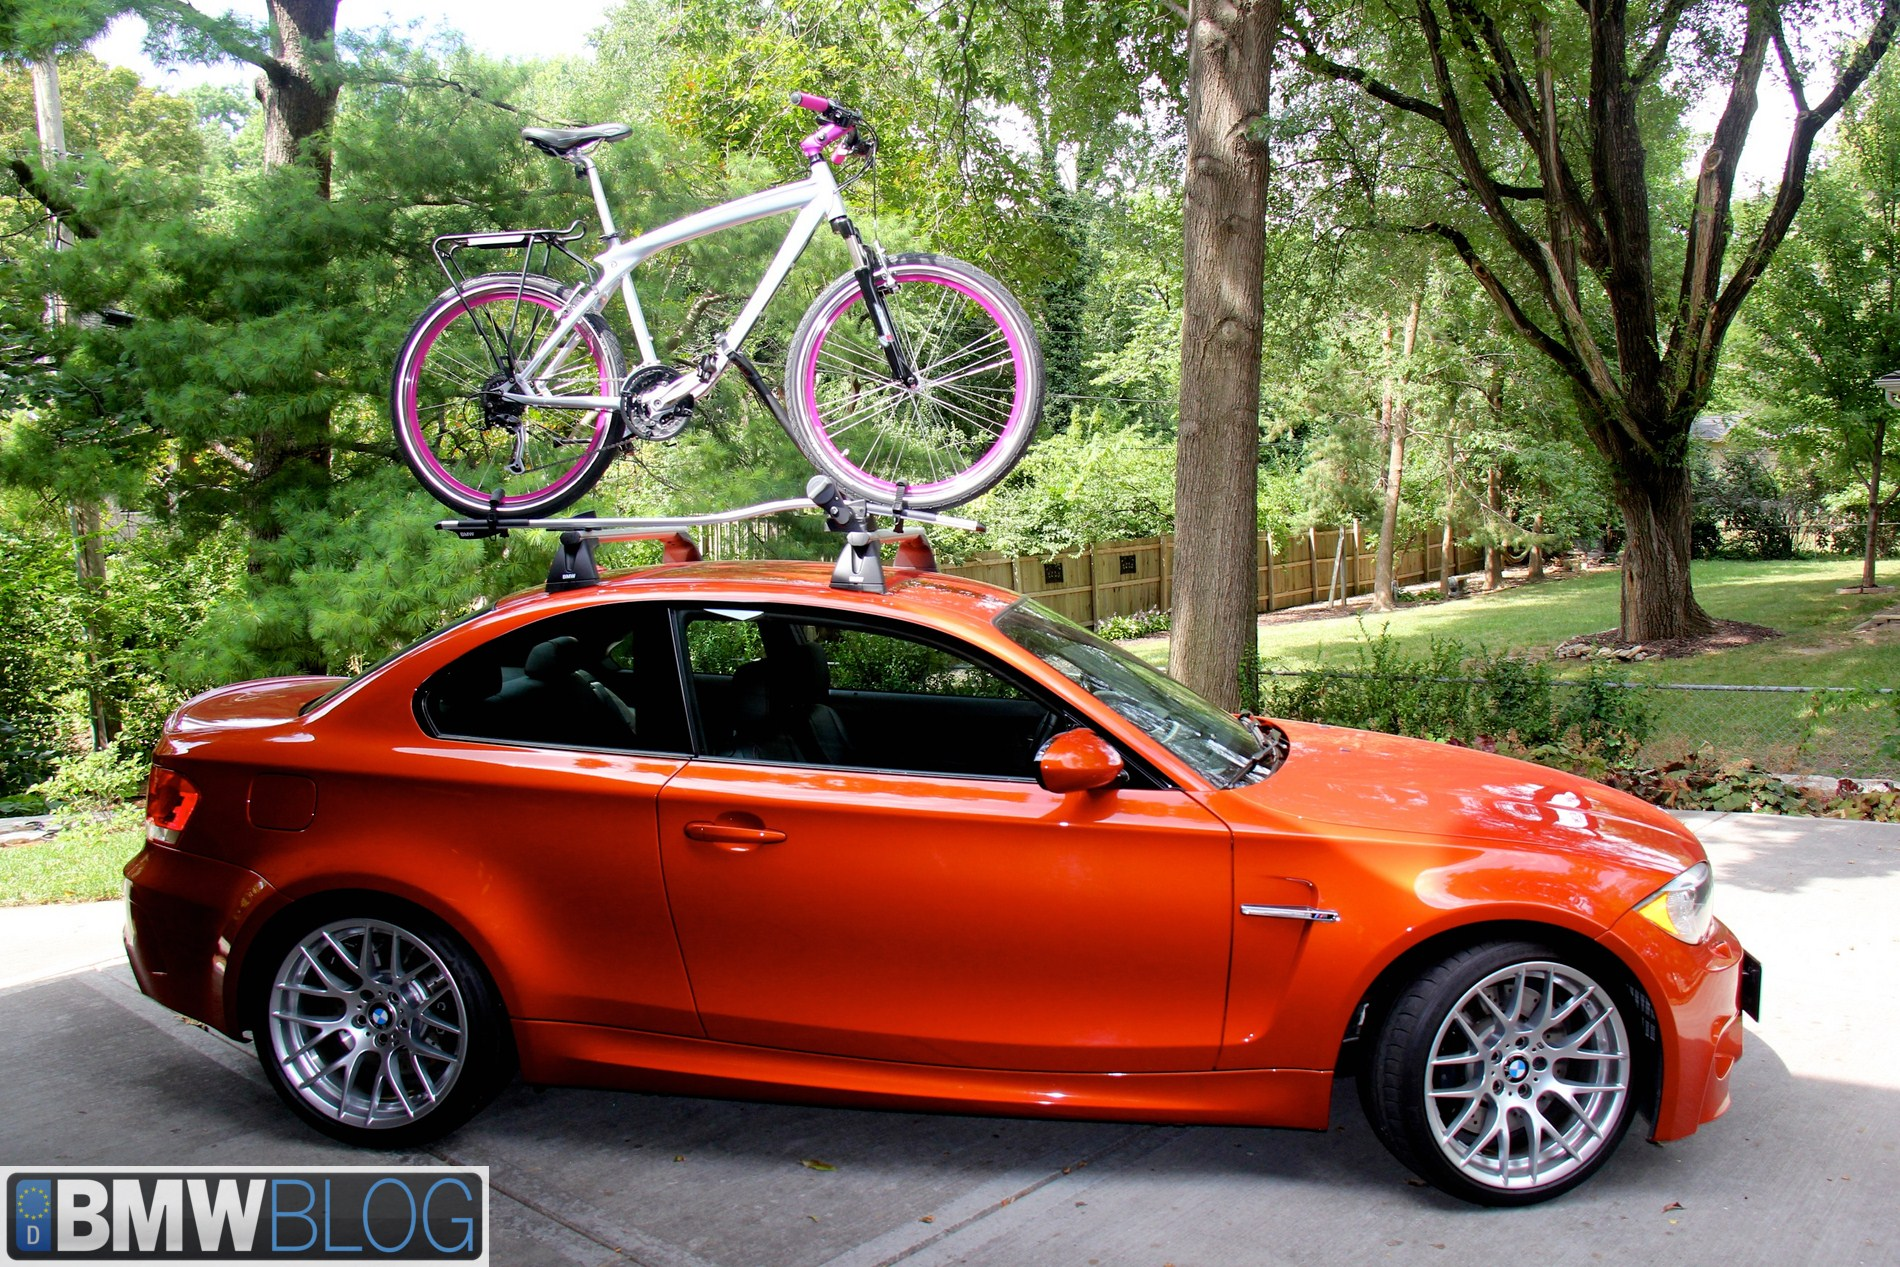 How To Install A Bmw Bike Rack